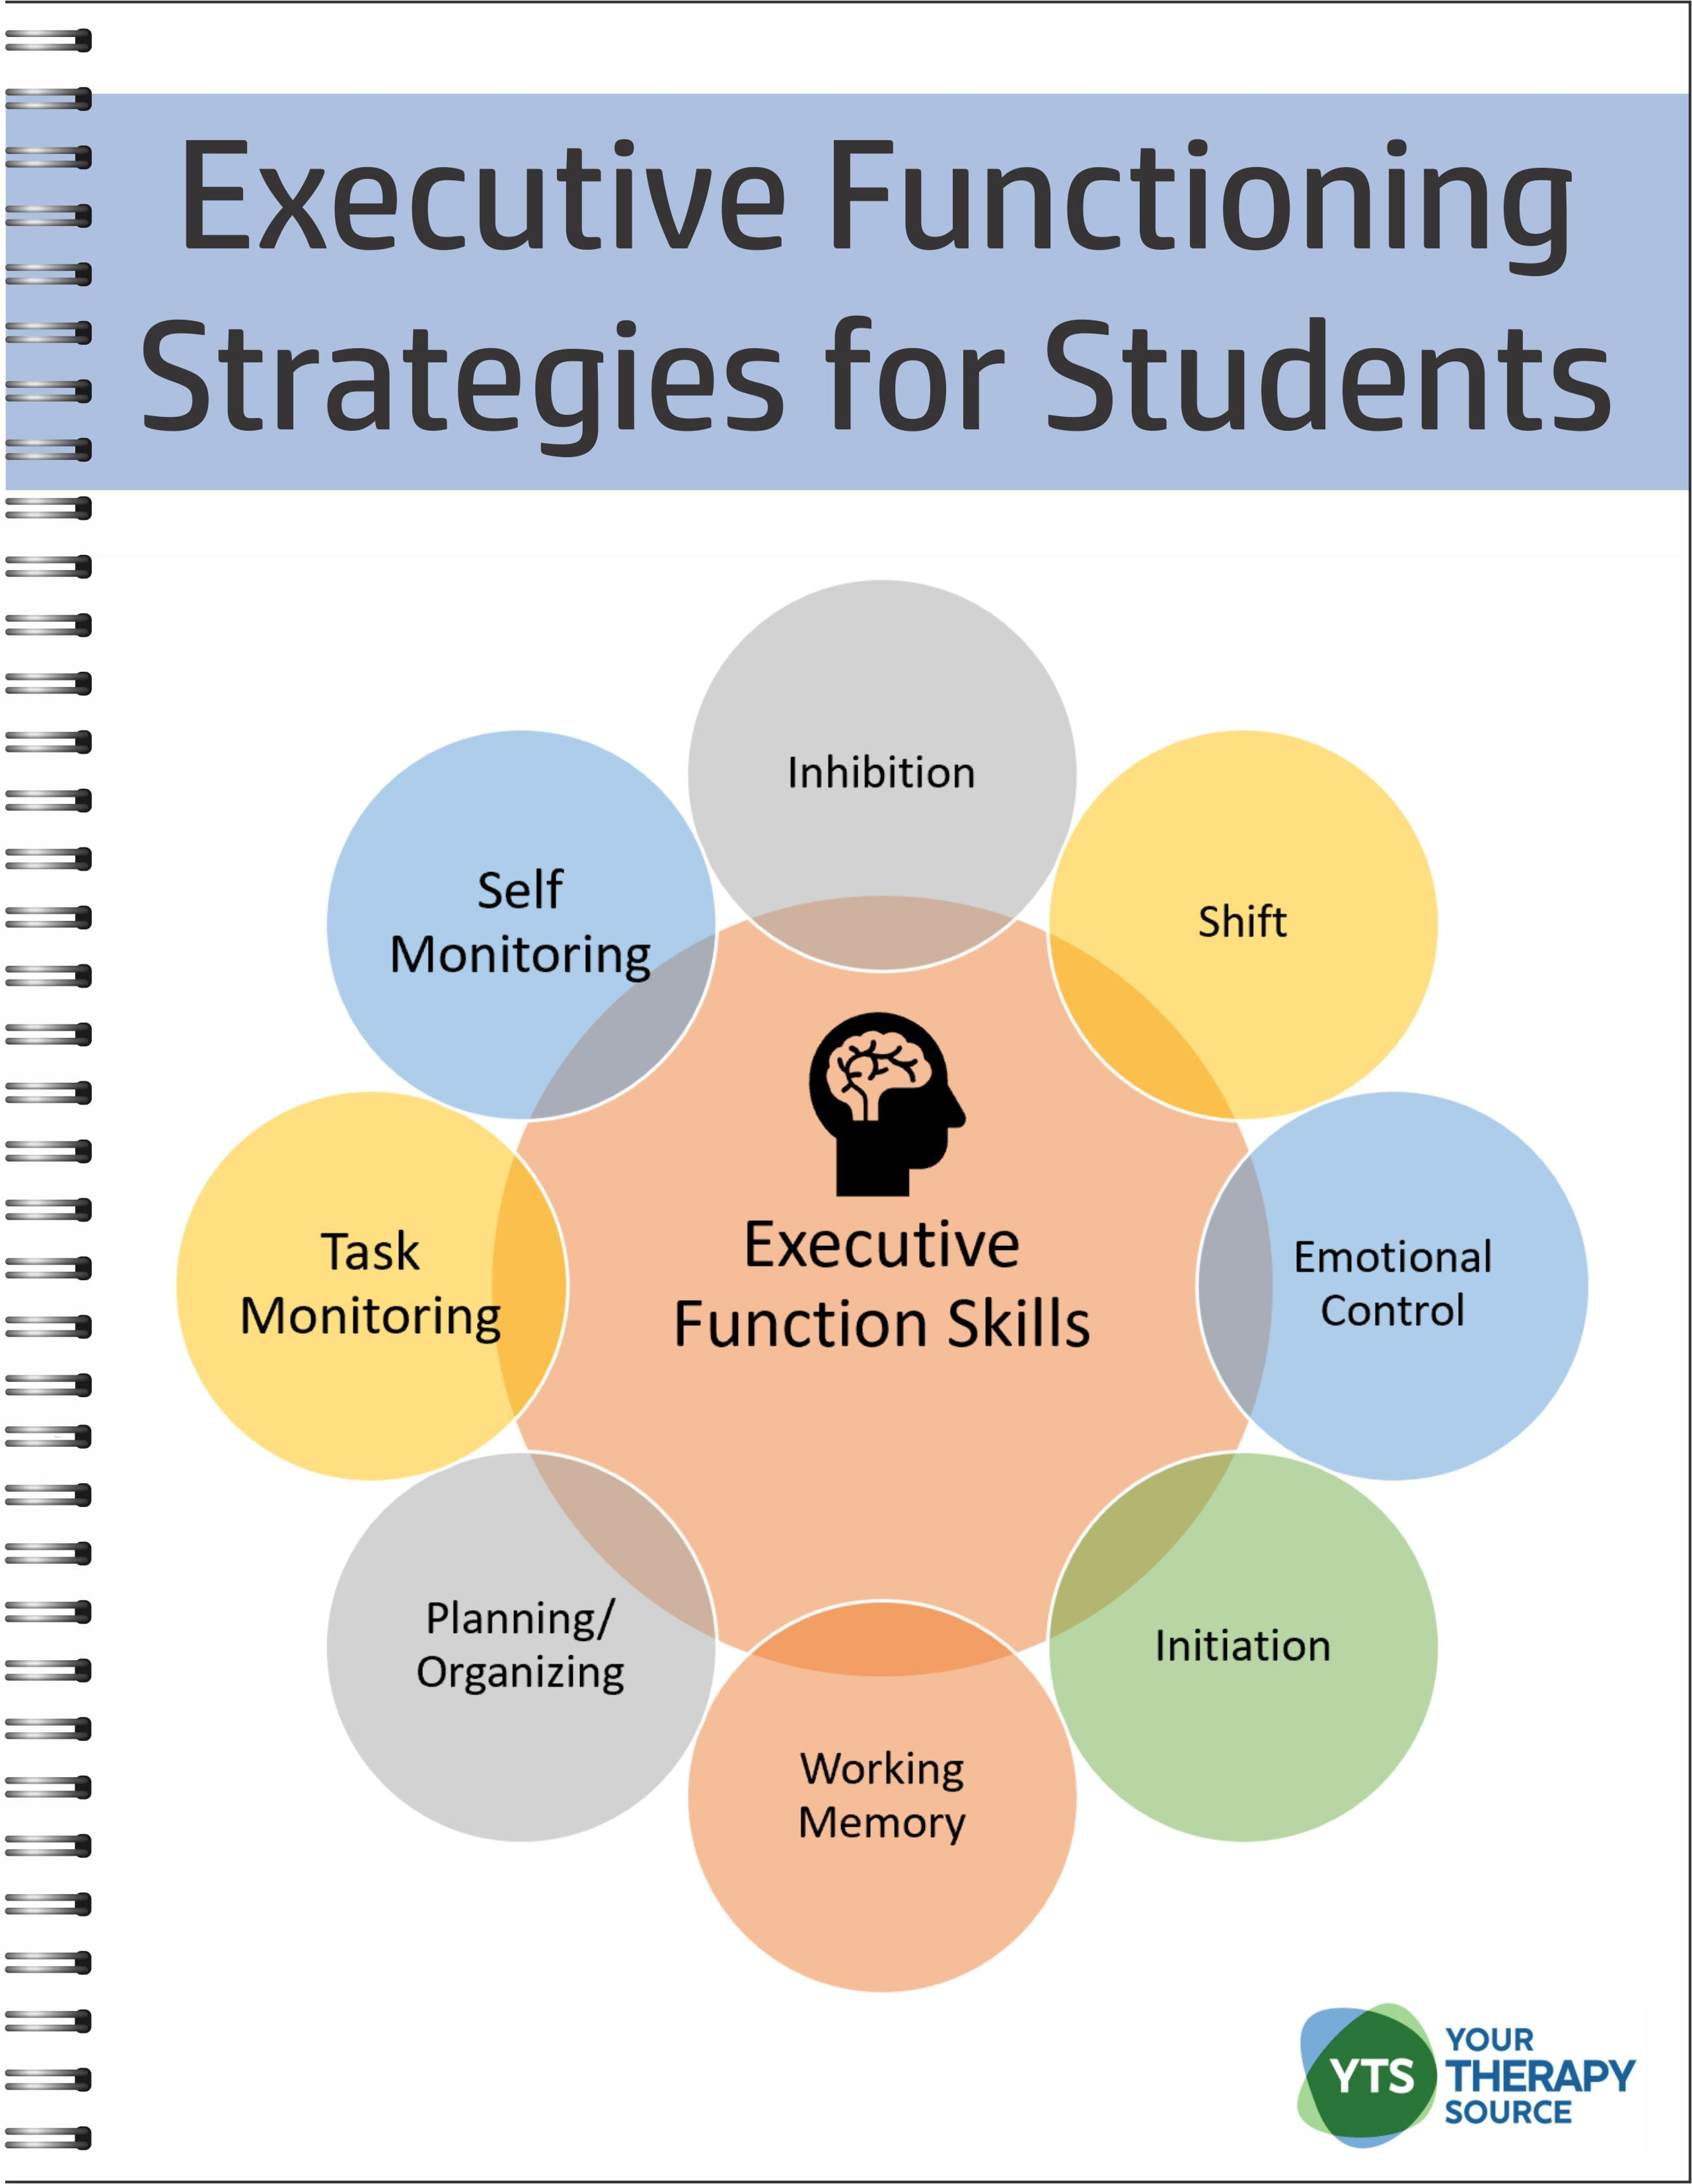 Executive Functioning Strategies For Students